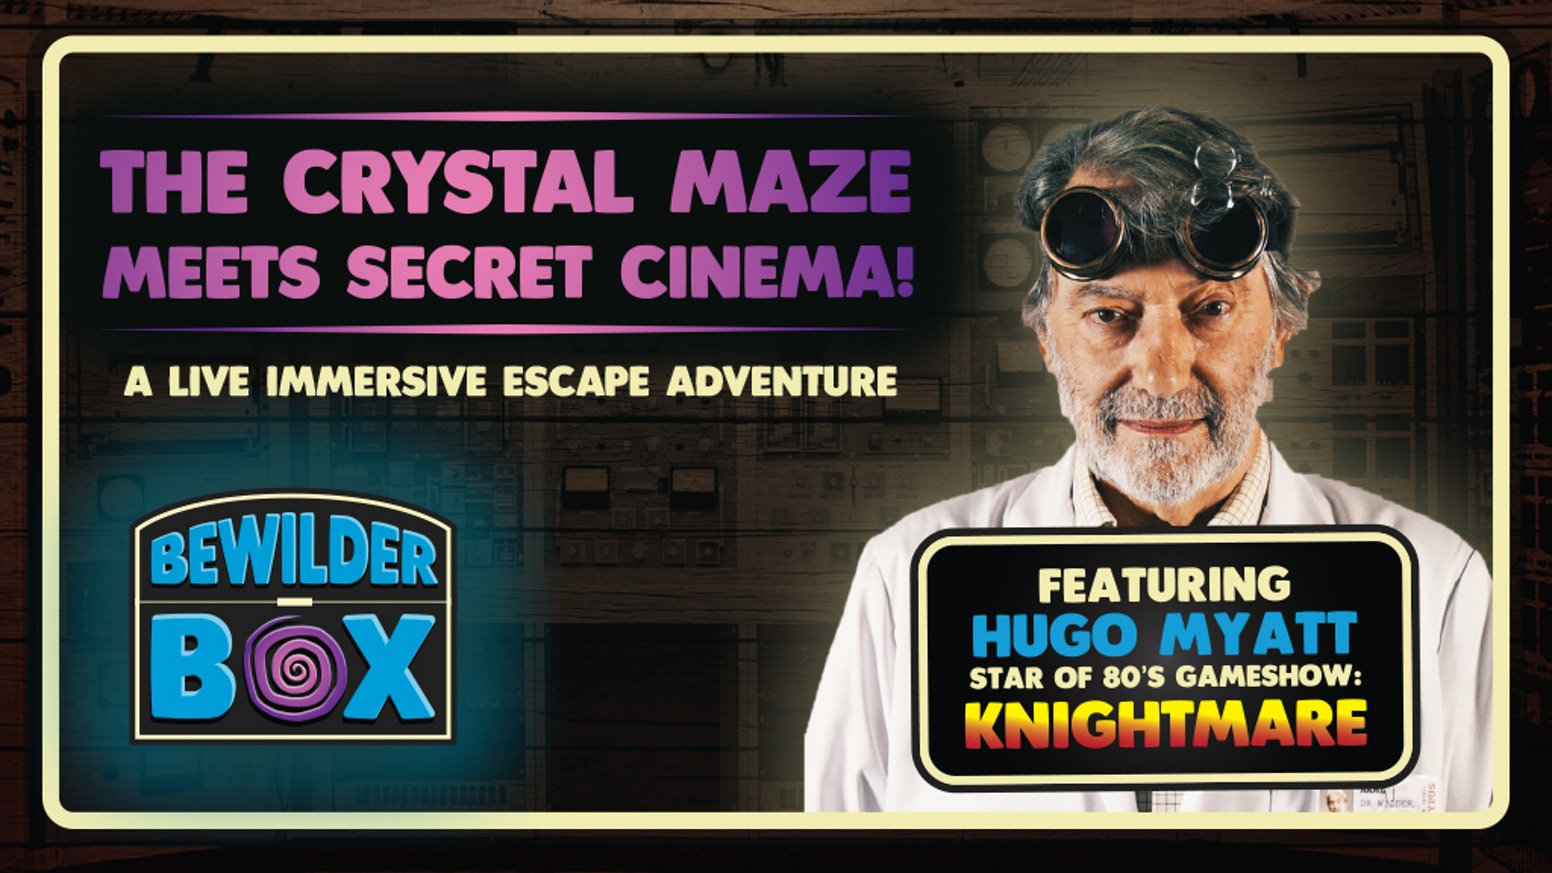 Based on the popular escape room concept; an original and exciting immersive group activity, starring Knightmare's Hugo Myatt.